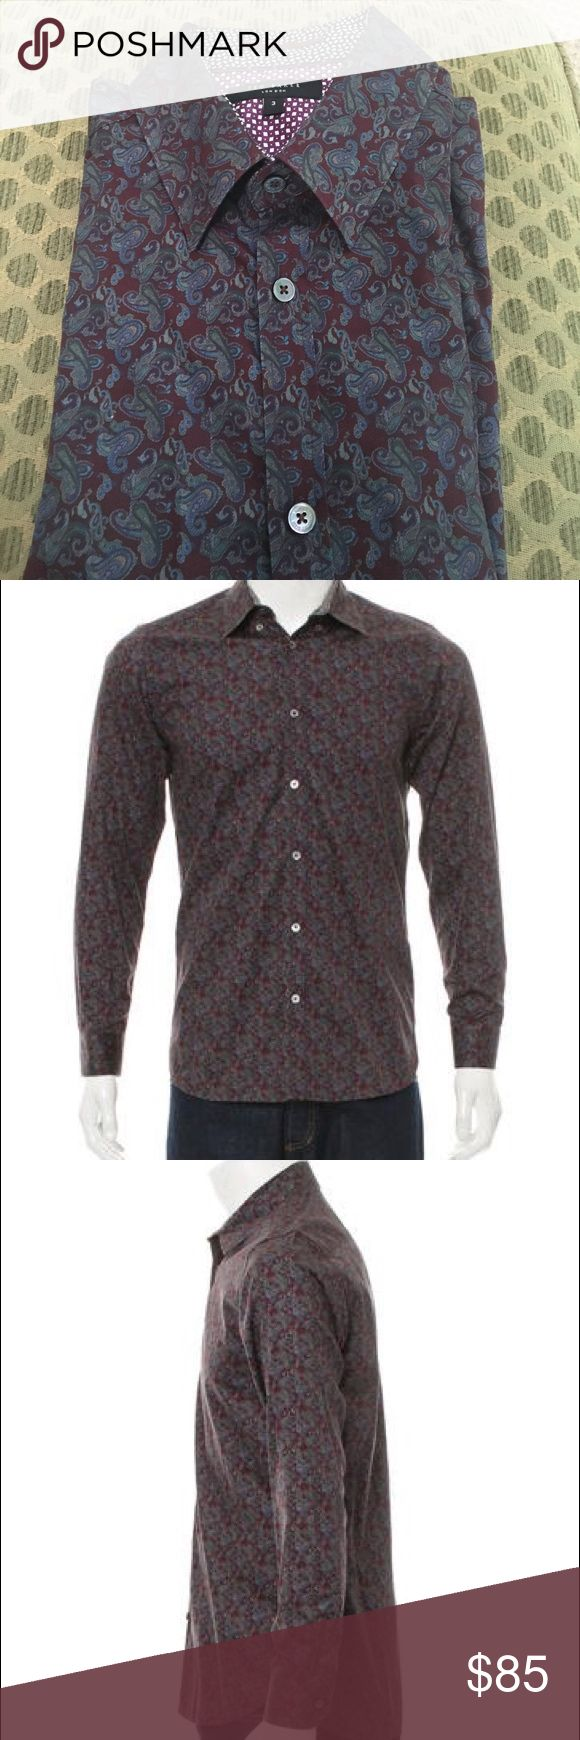 """Ted Baker Paisley Print Button-Up Men's Shirt Excellent condition maroon paisley shirt. Ted Baker size 3 which translates to a medium. Dimensions are chest: 40"""", length: 30"""", sleeve: 32.5"""", neck: 16"""". 100% cotton Ted Baker Shirts Casual Button Down Shirts"""